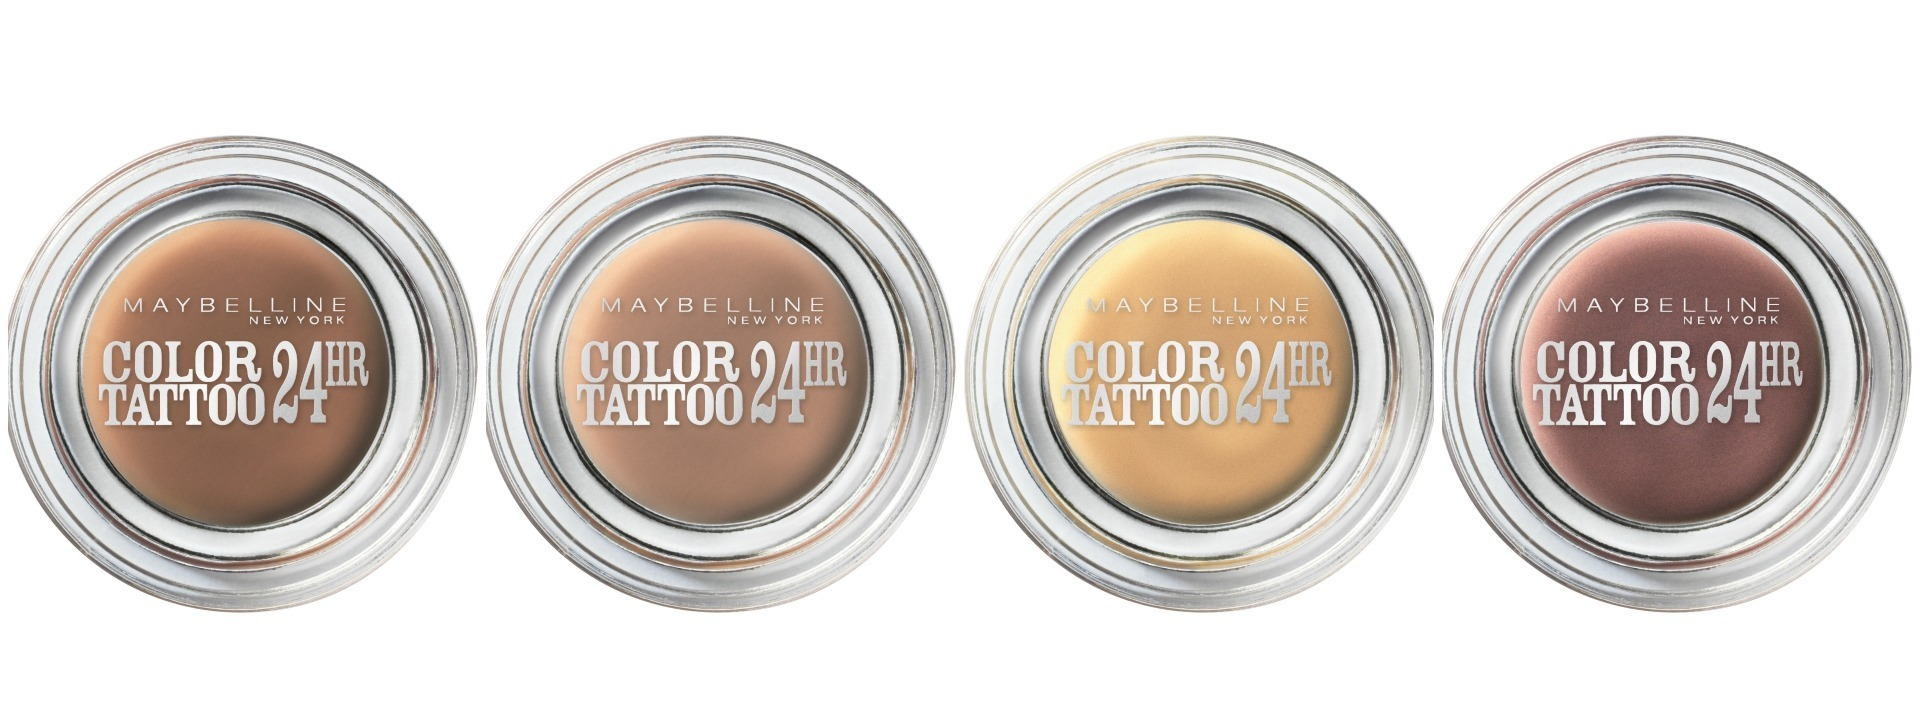 Maybelline color tattoo nude for Color tattoo maybelline